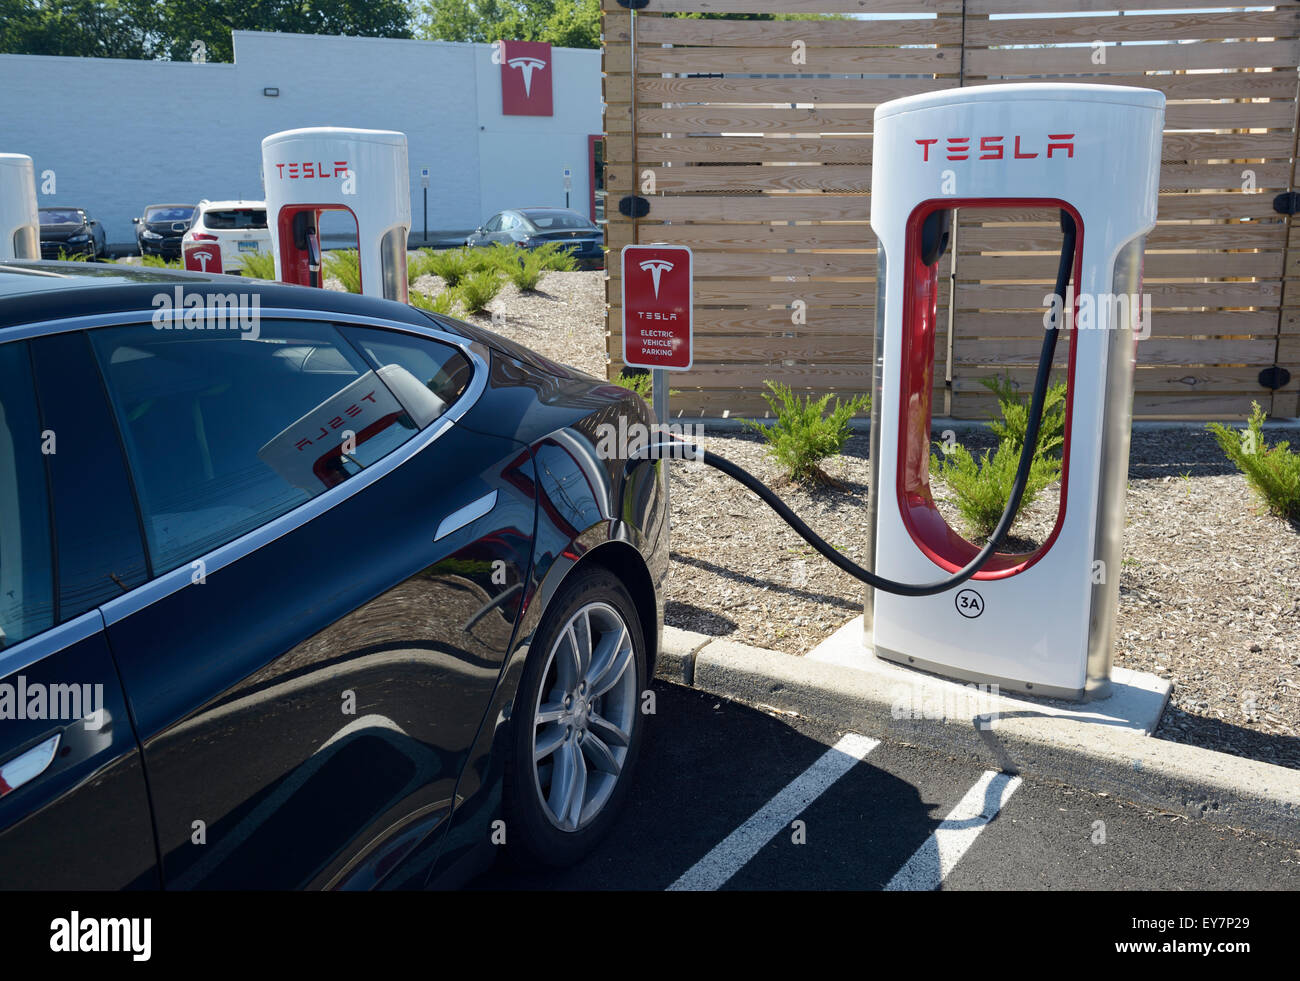 Electric Car Charging Station With A Tesla Sedan Plugged In Tesla